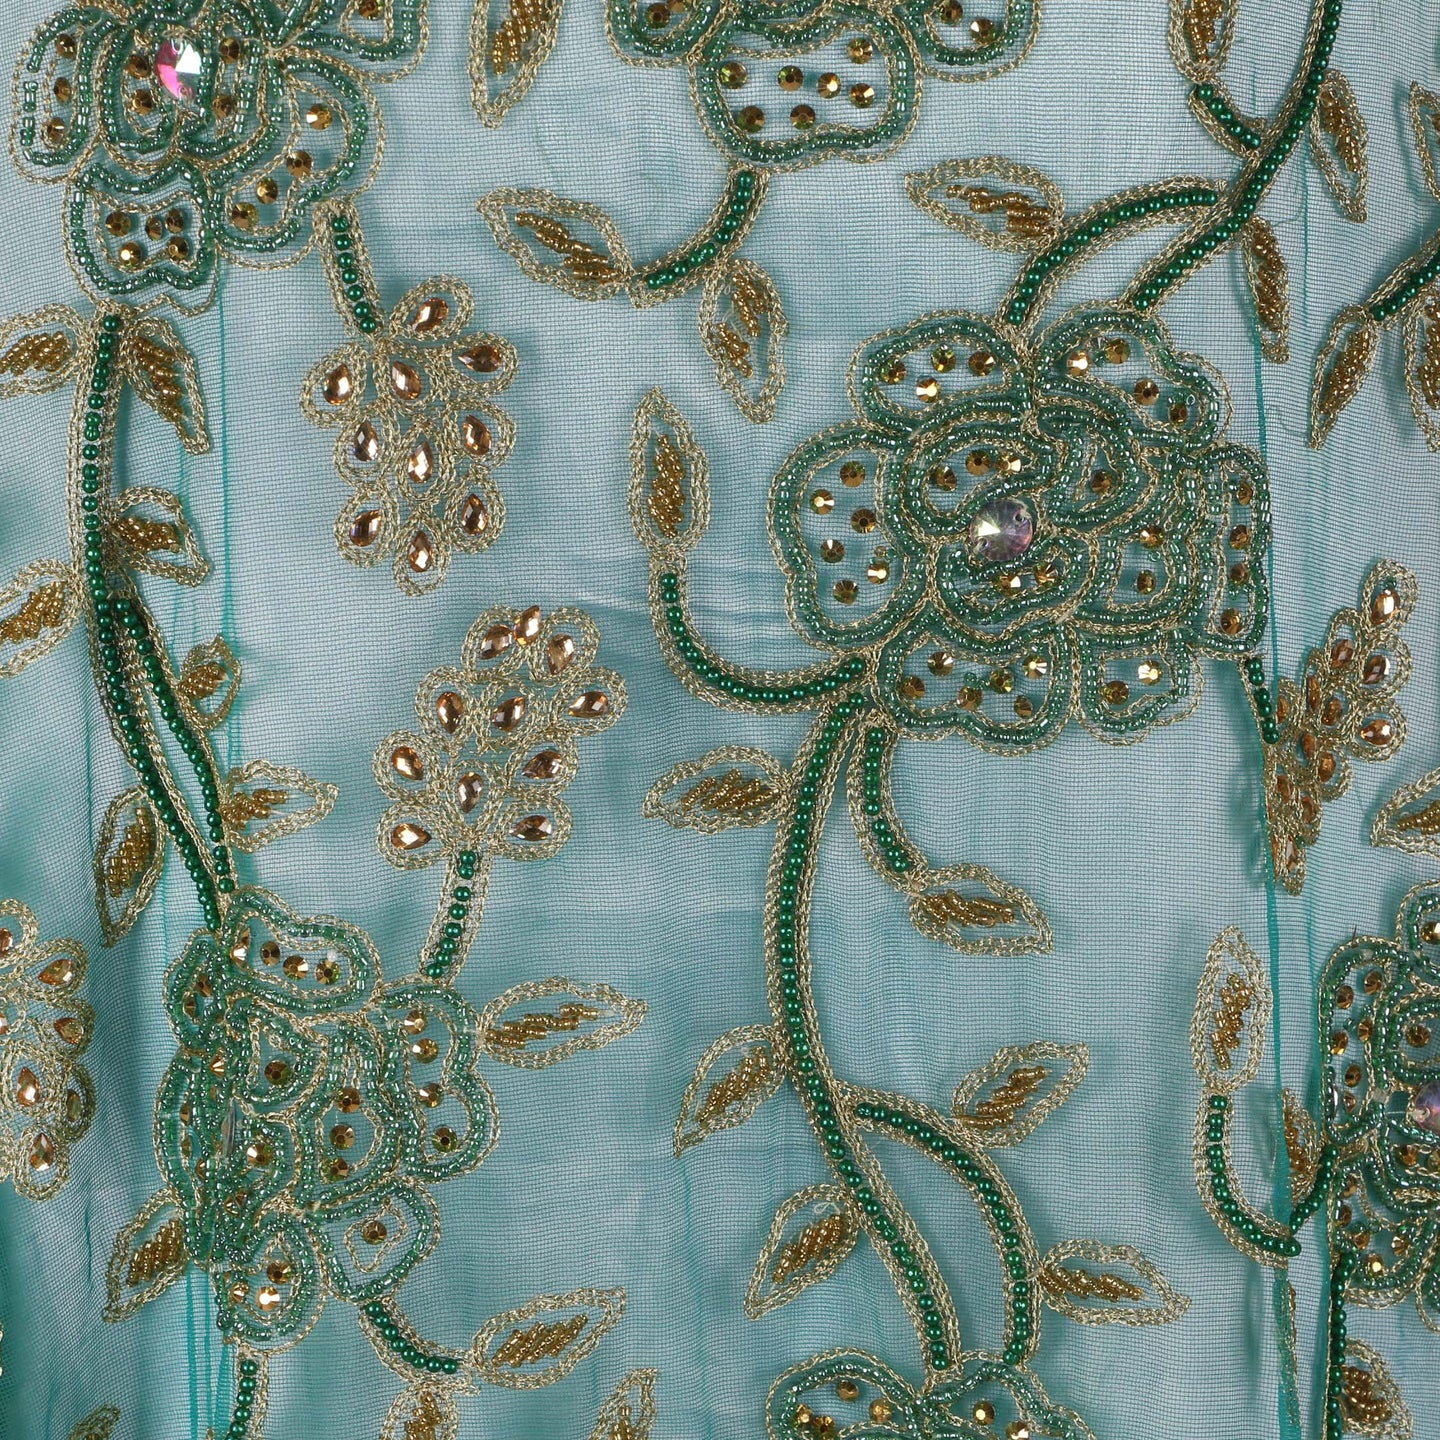 Hand Embroidered Fabric Design # 4149 - Teal Green - 5 Yard Piece